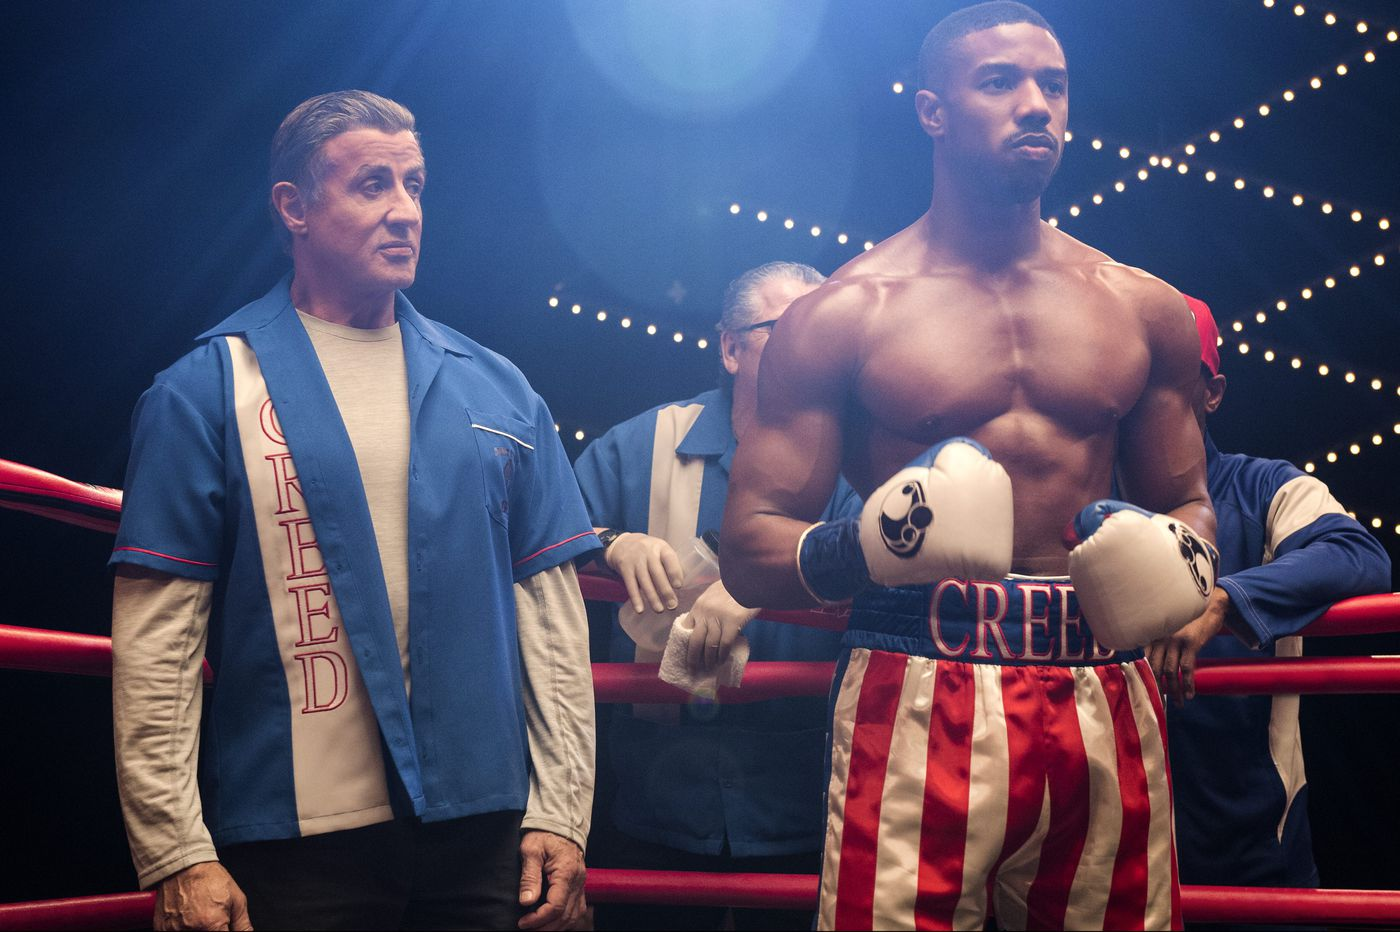 Adonis Creed prepares to fight Ivan Drago's son in new 'Creed II' trailer